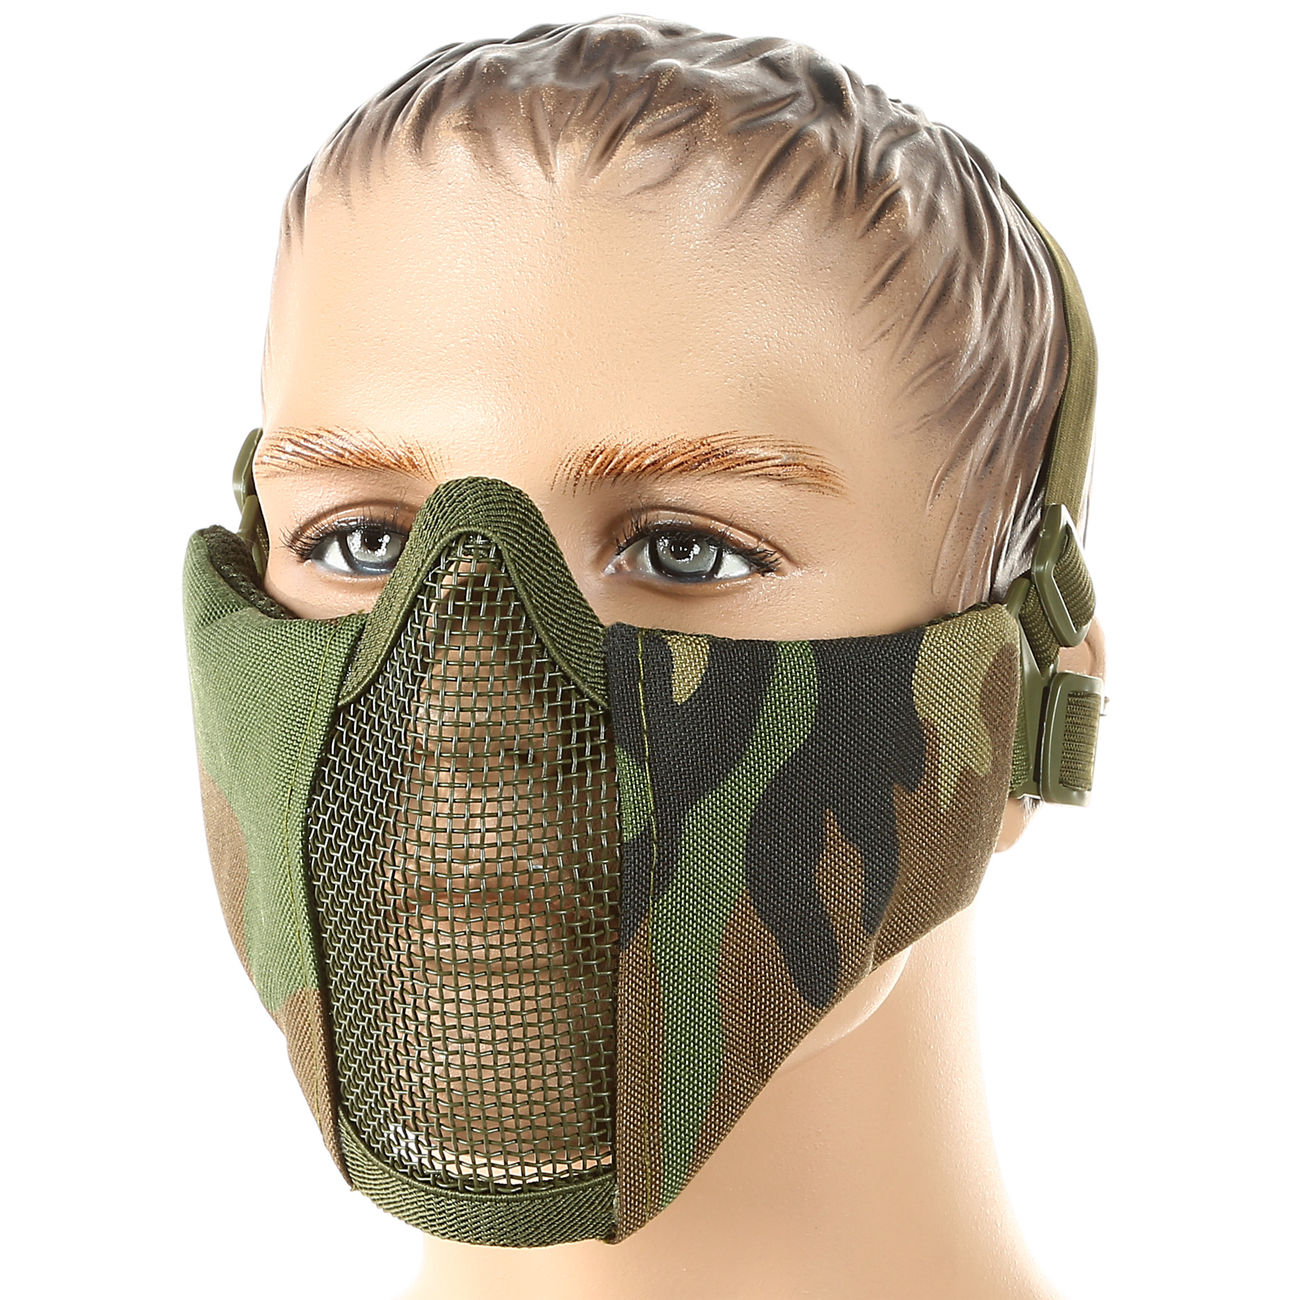 101 INC. Airsoft Gittermaske woodland